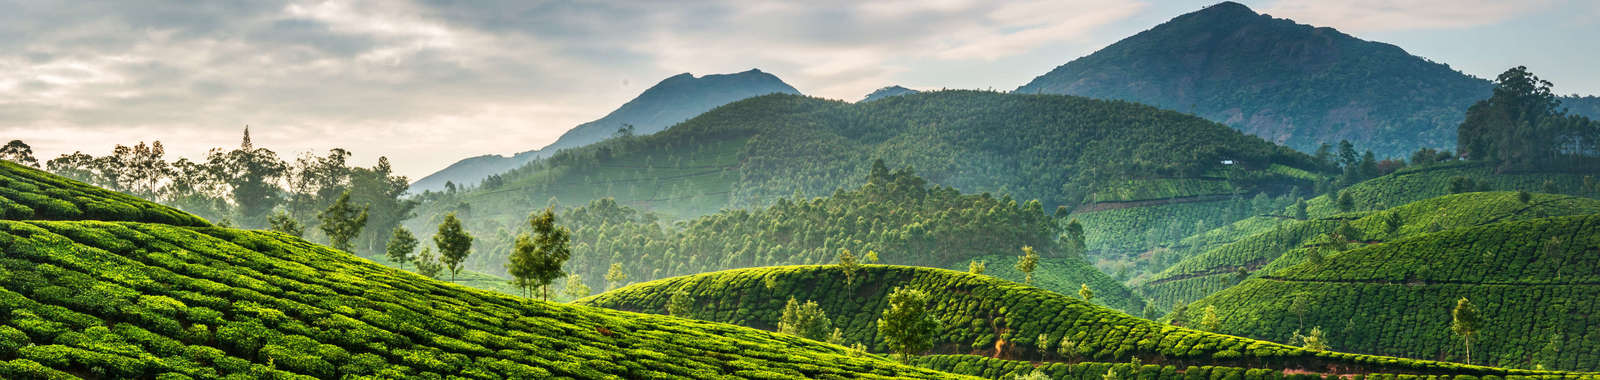 Explore the tea plantations of Munnar on a tailor-made holiday to Kerala, South India